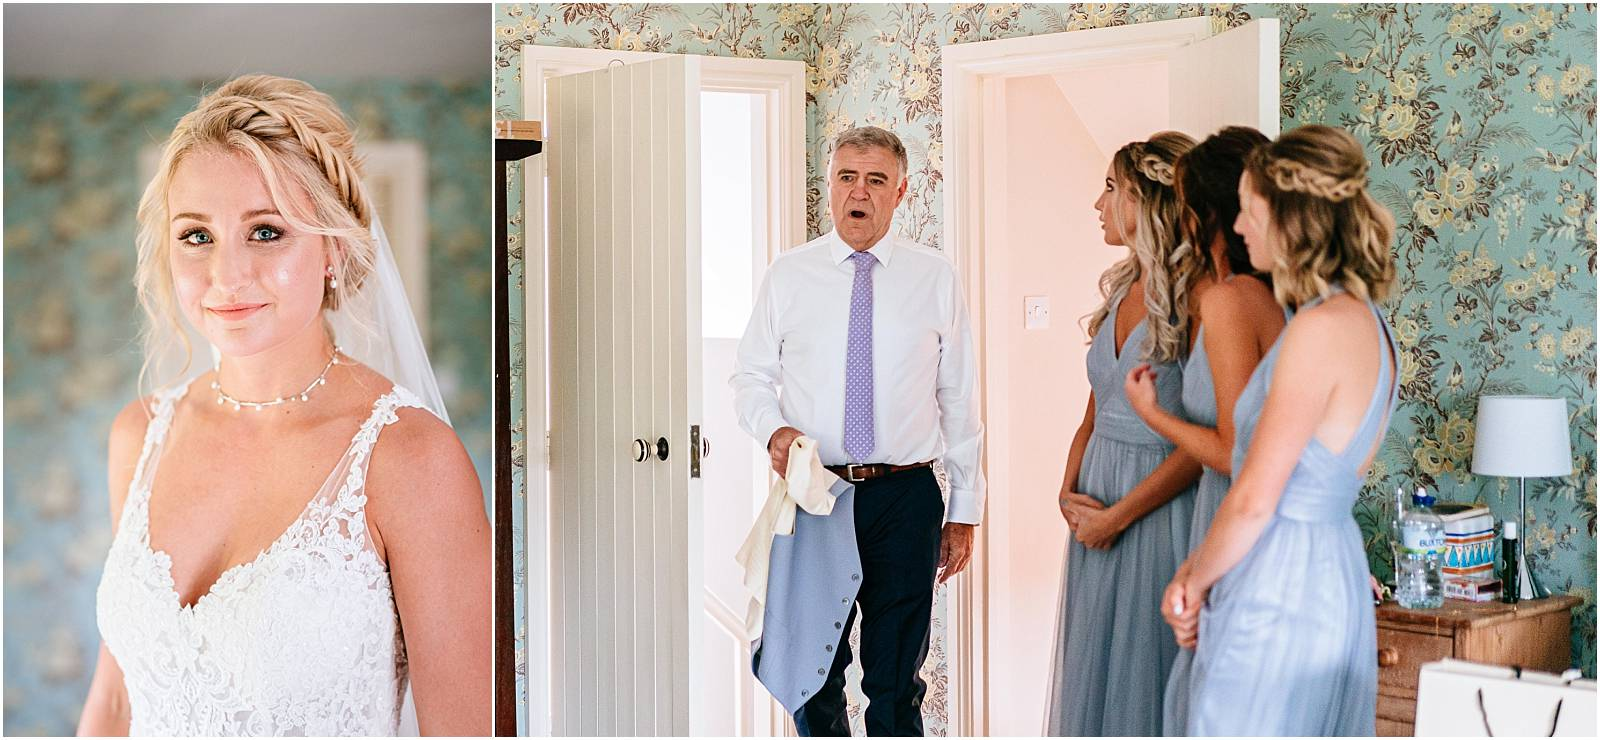 father gasps as sees bride for the first time